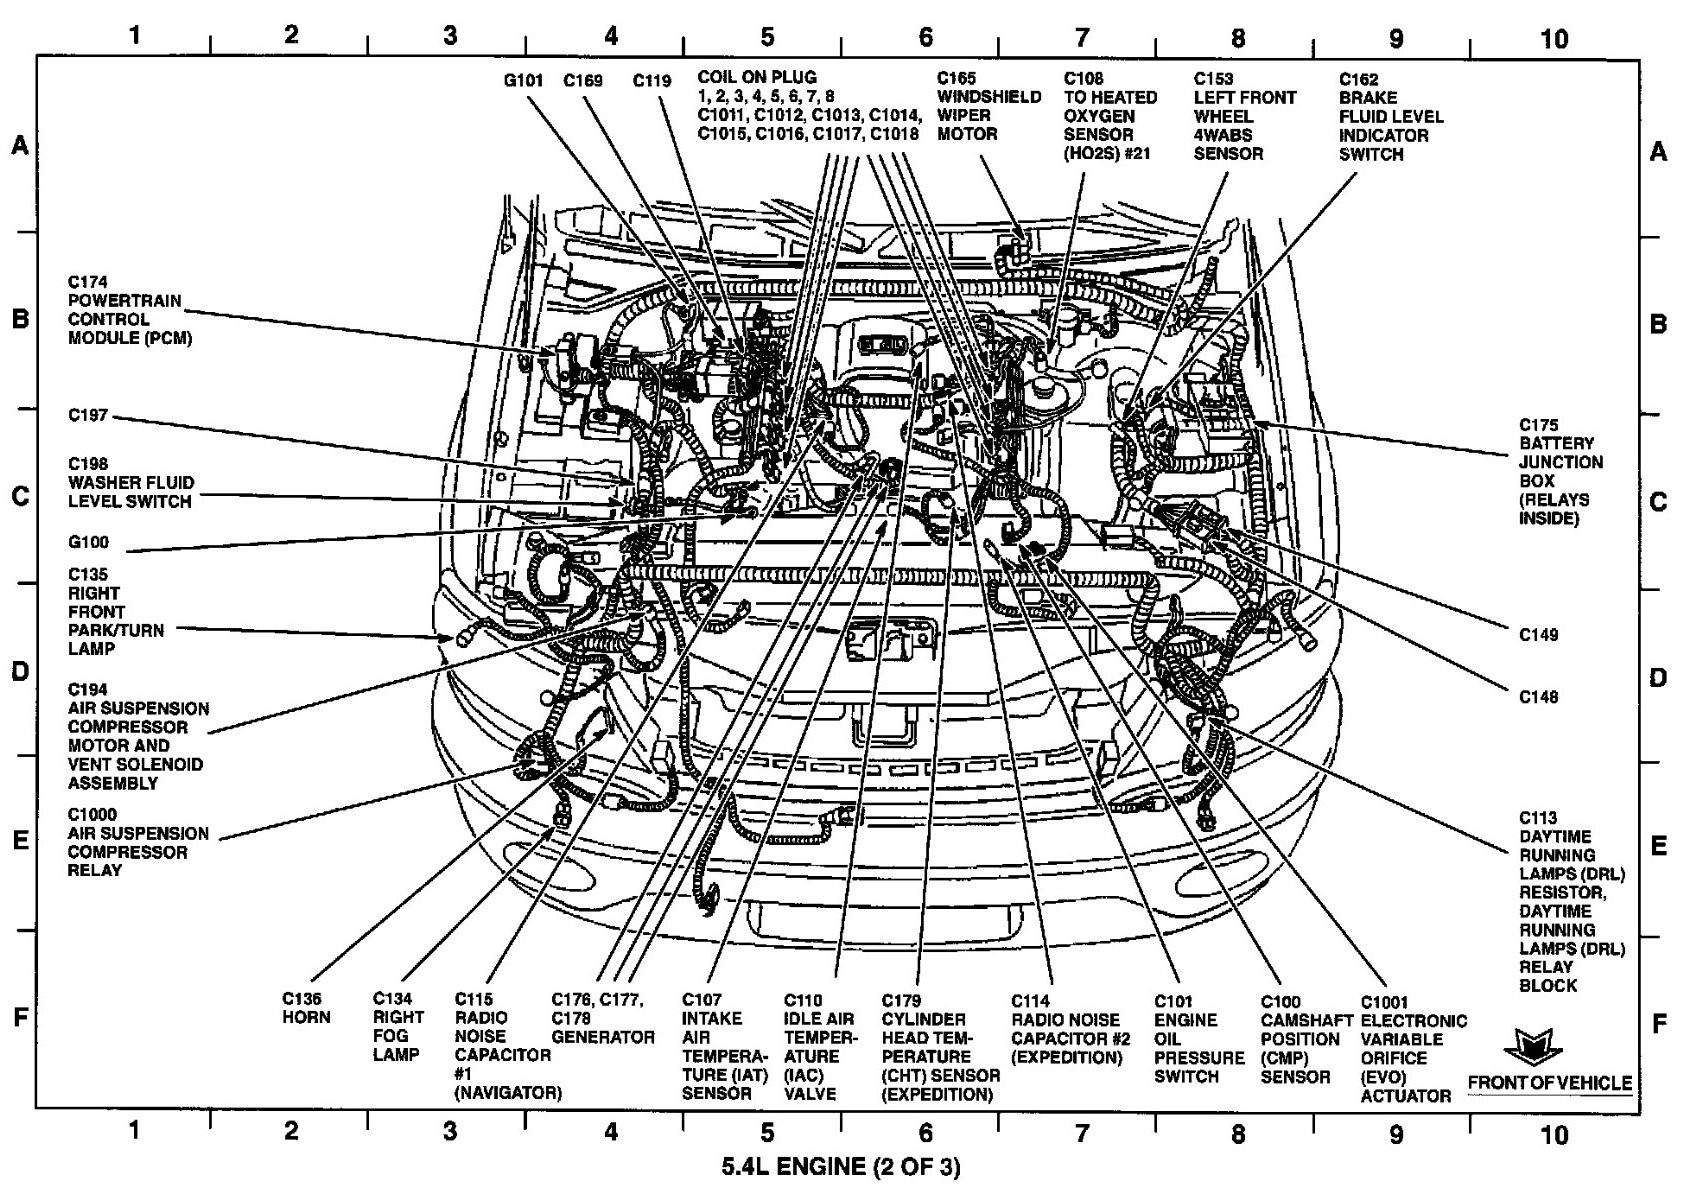 Bmw 535i Engine Diagram - Wiring Diagram General Helper M Engine Diagram on m44 engine diagram, h1 engine diagram, g20 engine diagram, m20 engine diagram, m96 engine diagram, fx45 engine diagram, m54 engine diagram, m104 engine diagram, m52 engine diagram, m10 engine diagram, m50 engine diagram, m45 engine diagram, m62 engine diagram, m60 engine diagram, m42 engine diagram,